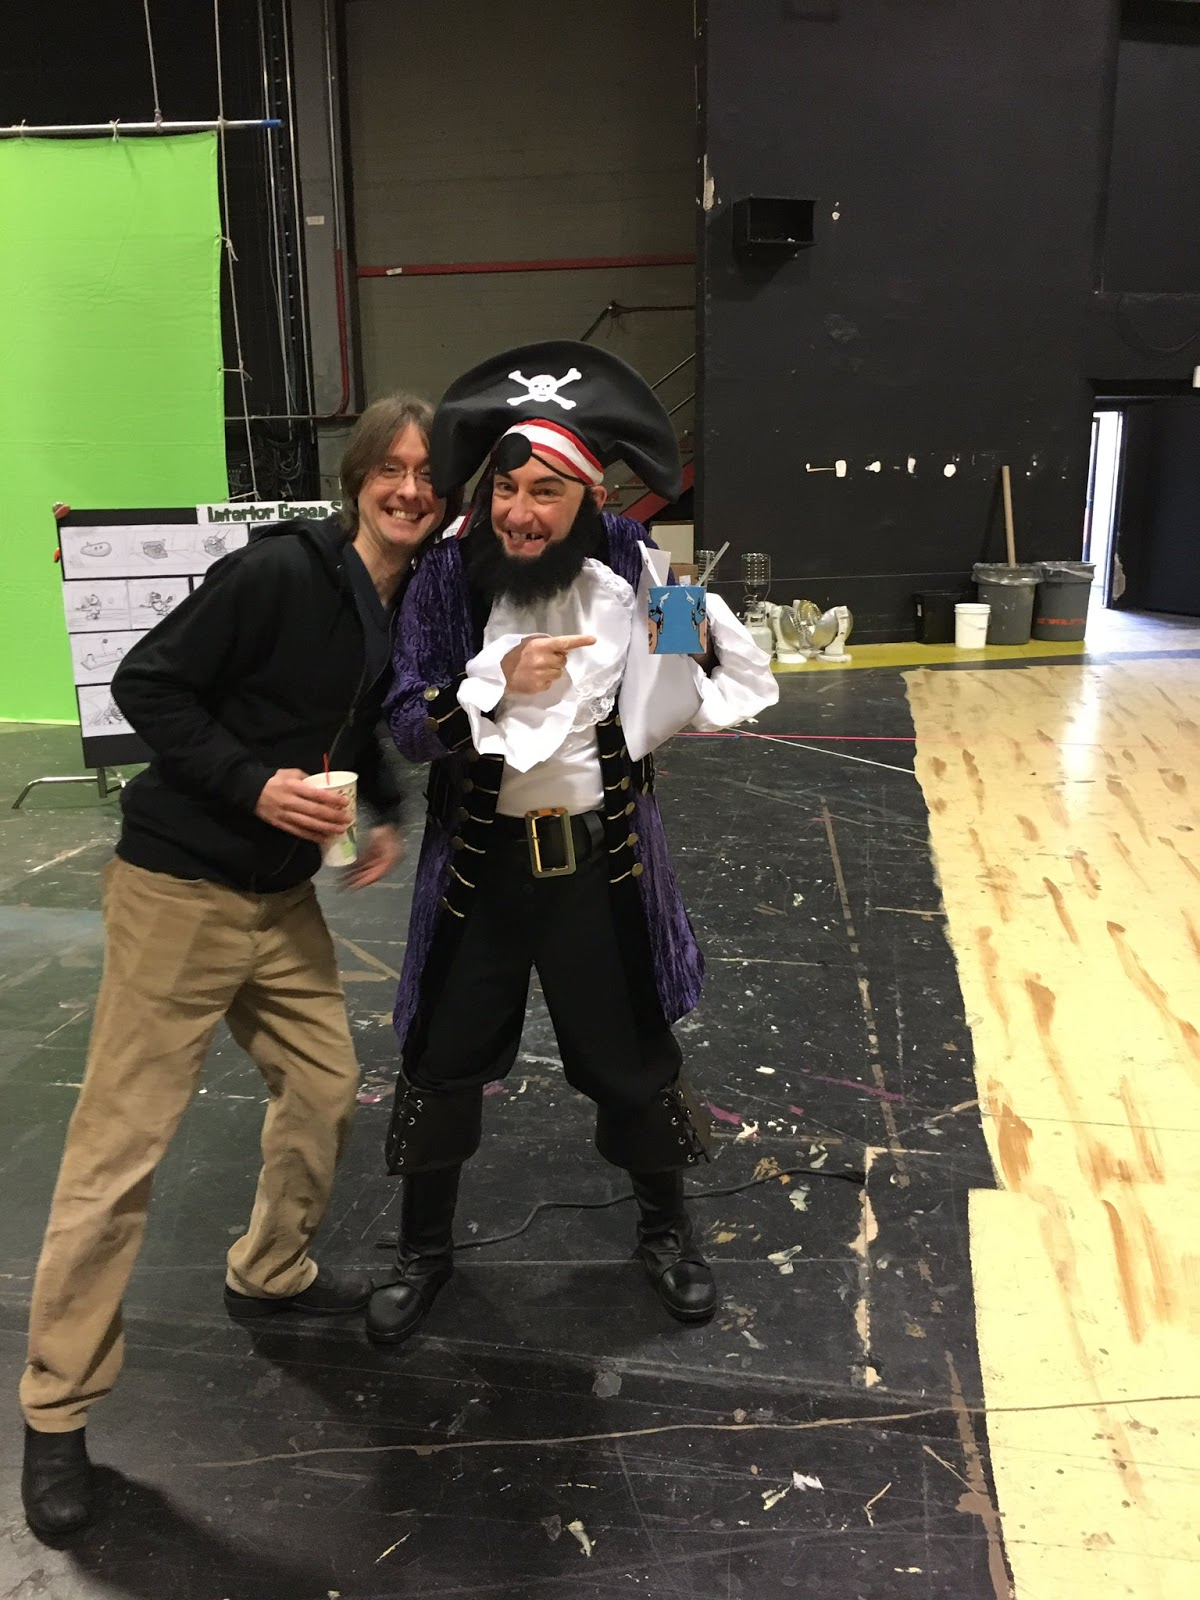 nickalive patchy the pirate and potty the parrot to feature in